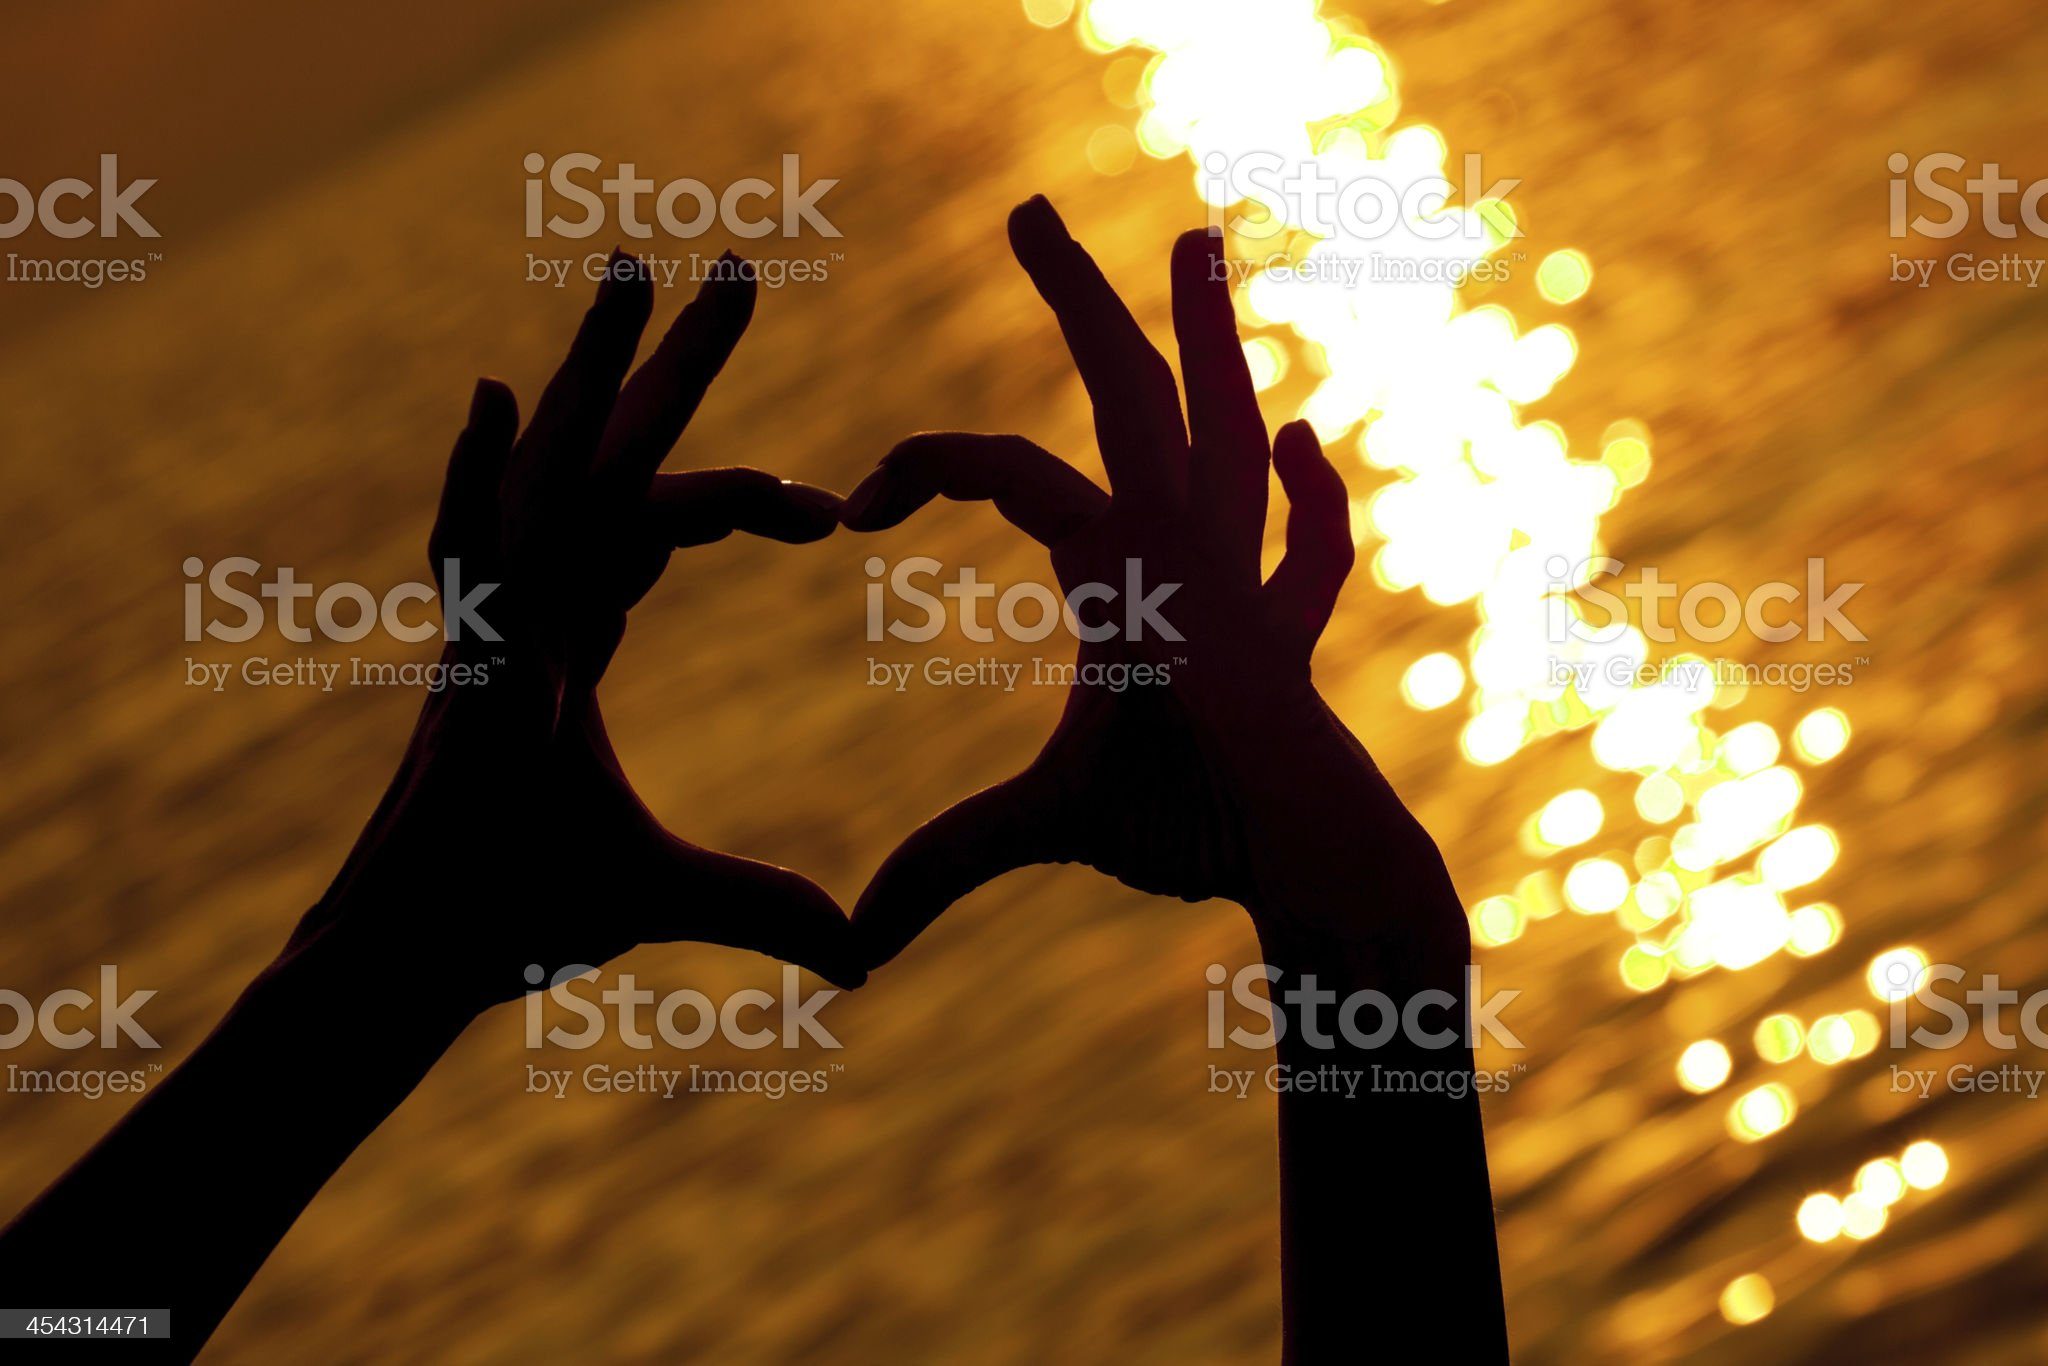 Heart shape silhouette royalty-free stock photo